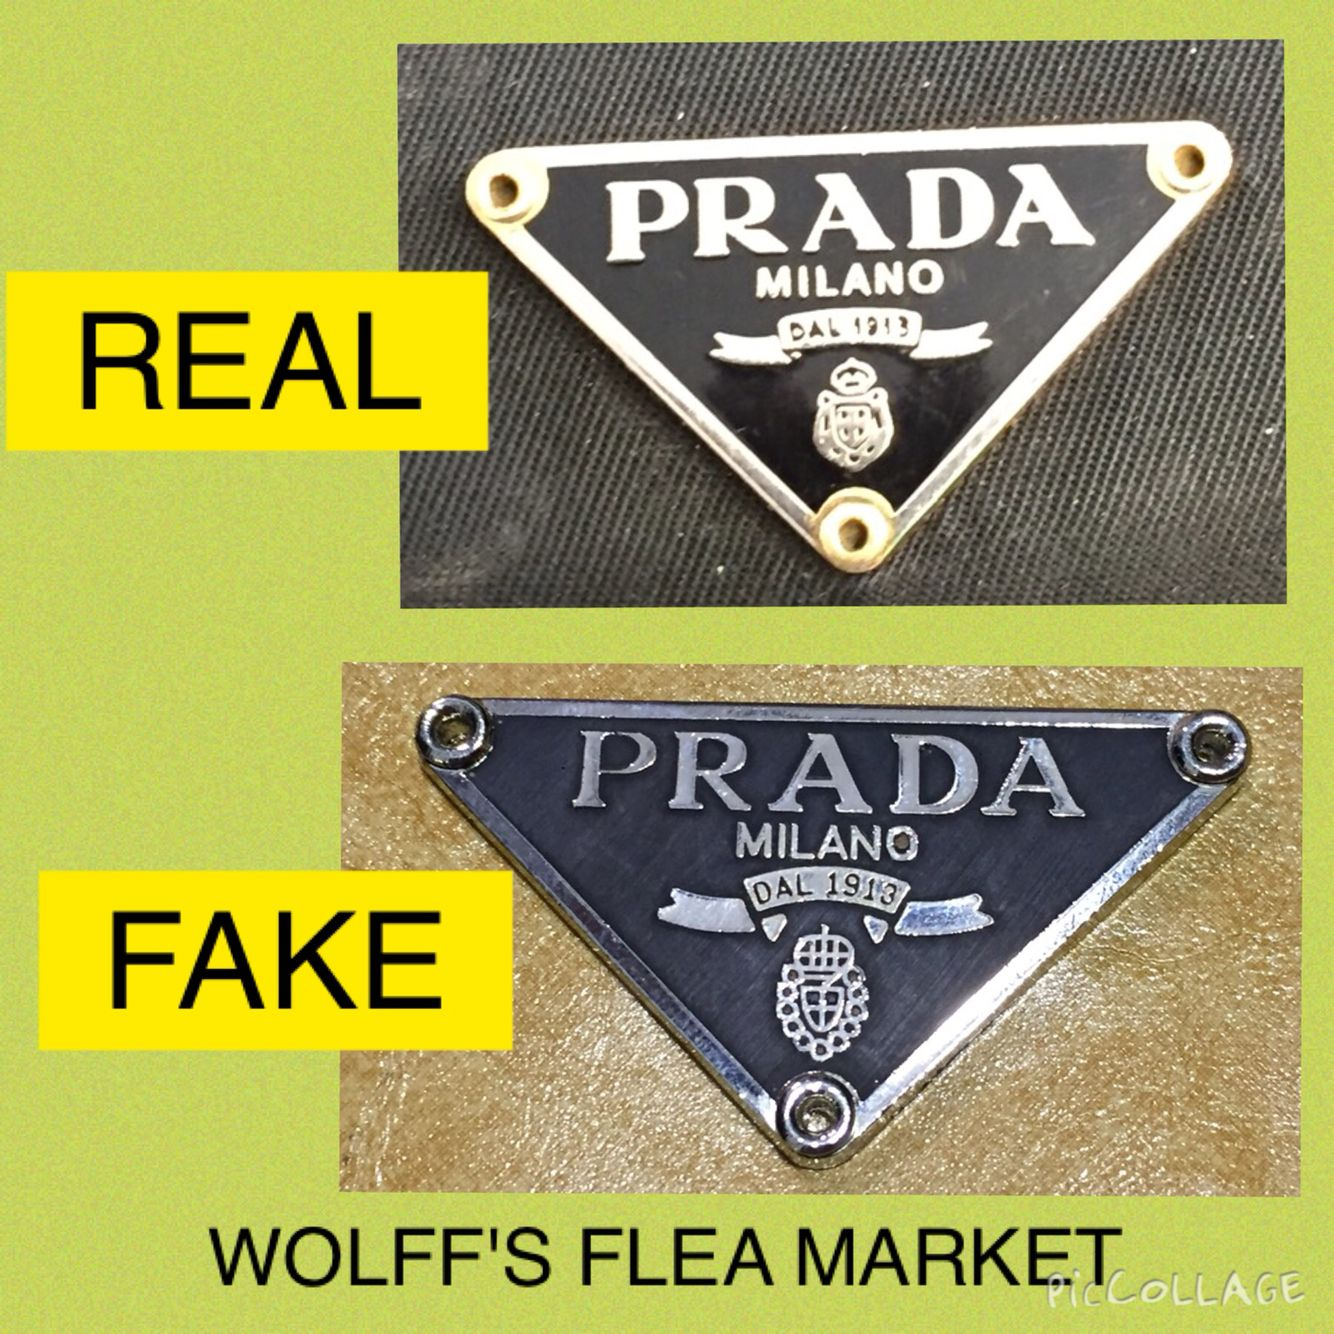 Real vs. Fake Prada tag | Counterfeit Education: The Bad